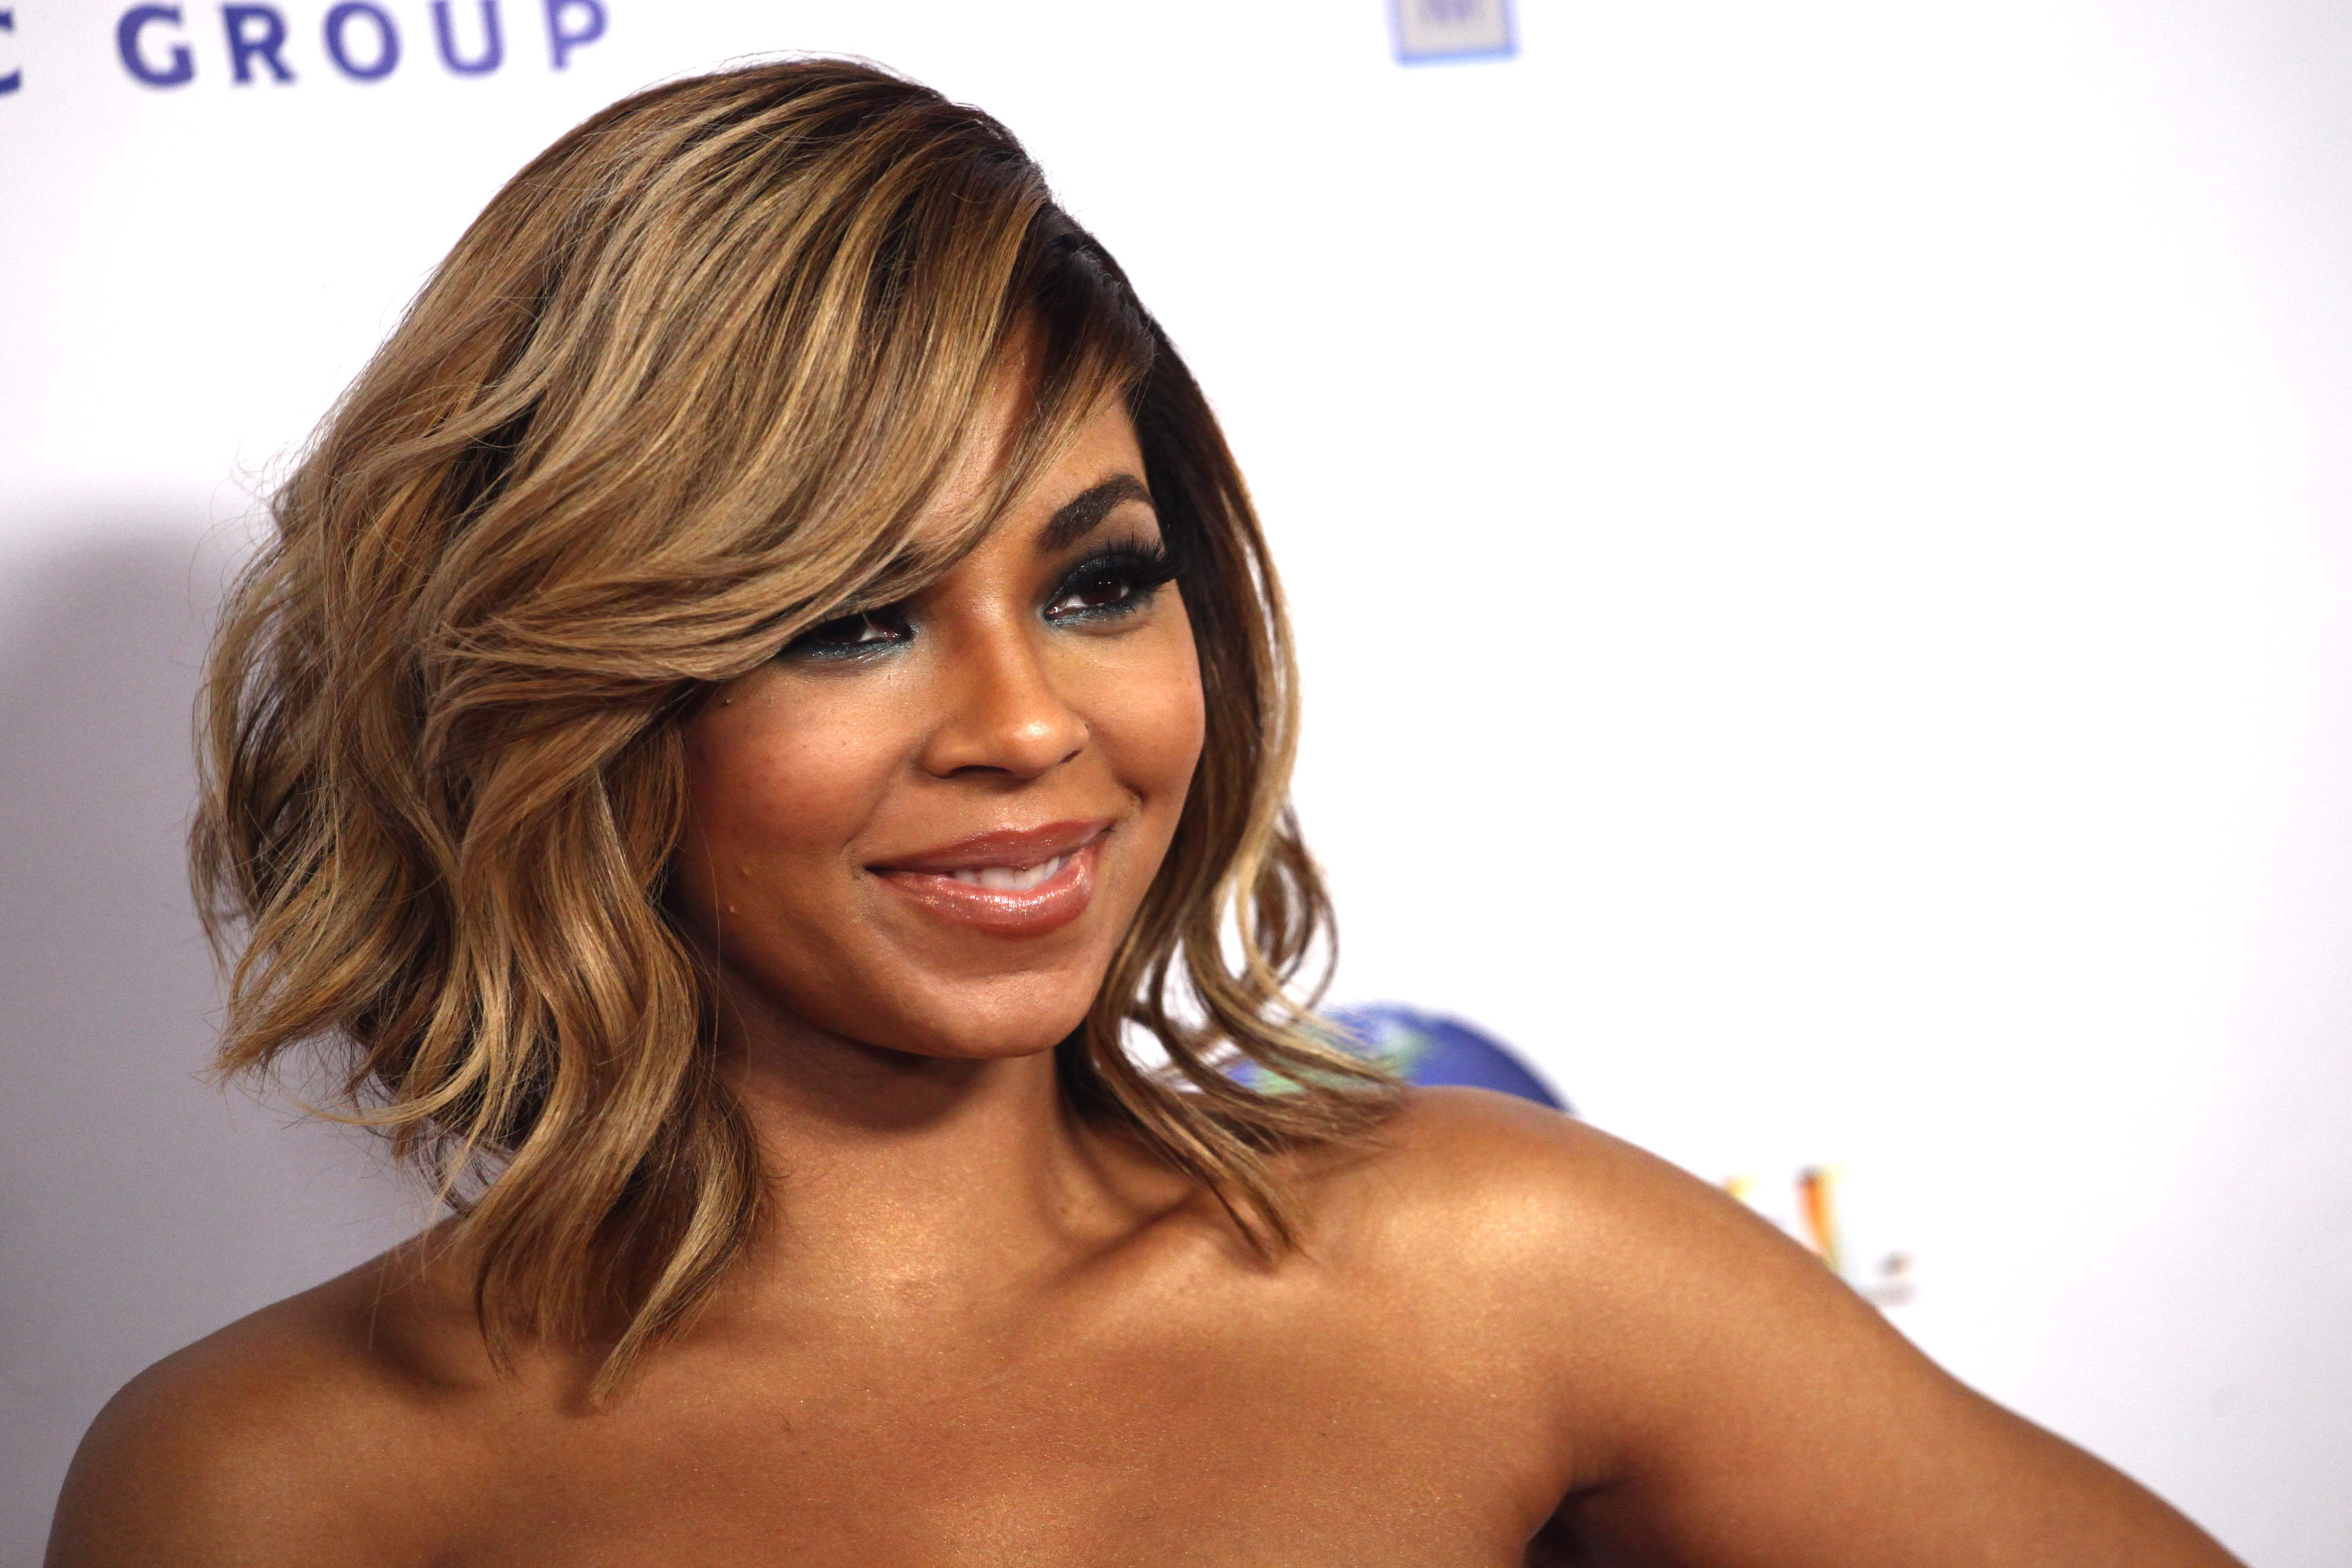 Ashanti attends the Universal Music Group 2014 post GRAMMY party held on Jan. 26, 2014, in Los Angeles